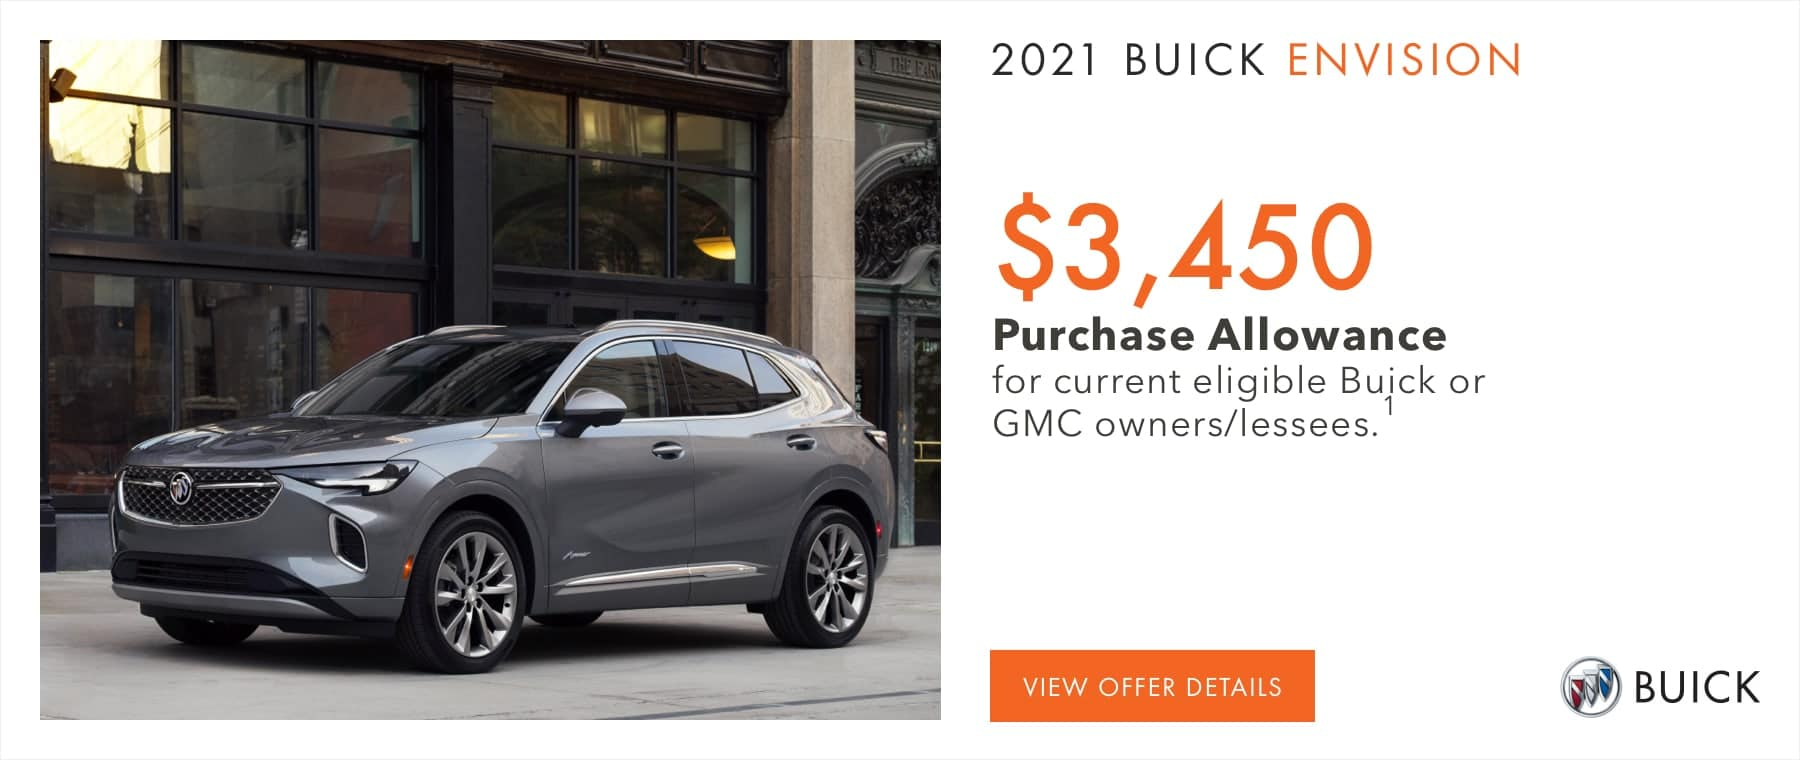 $3,450 Purchase Allowance for current eligible Buick or GMC owners/lessees.1